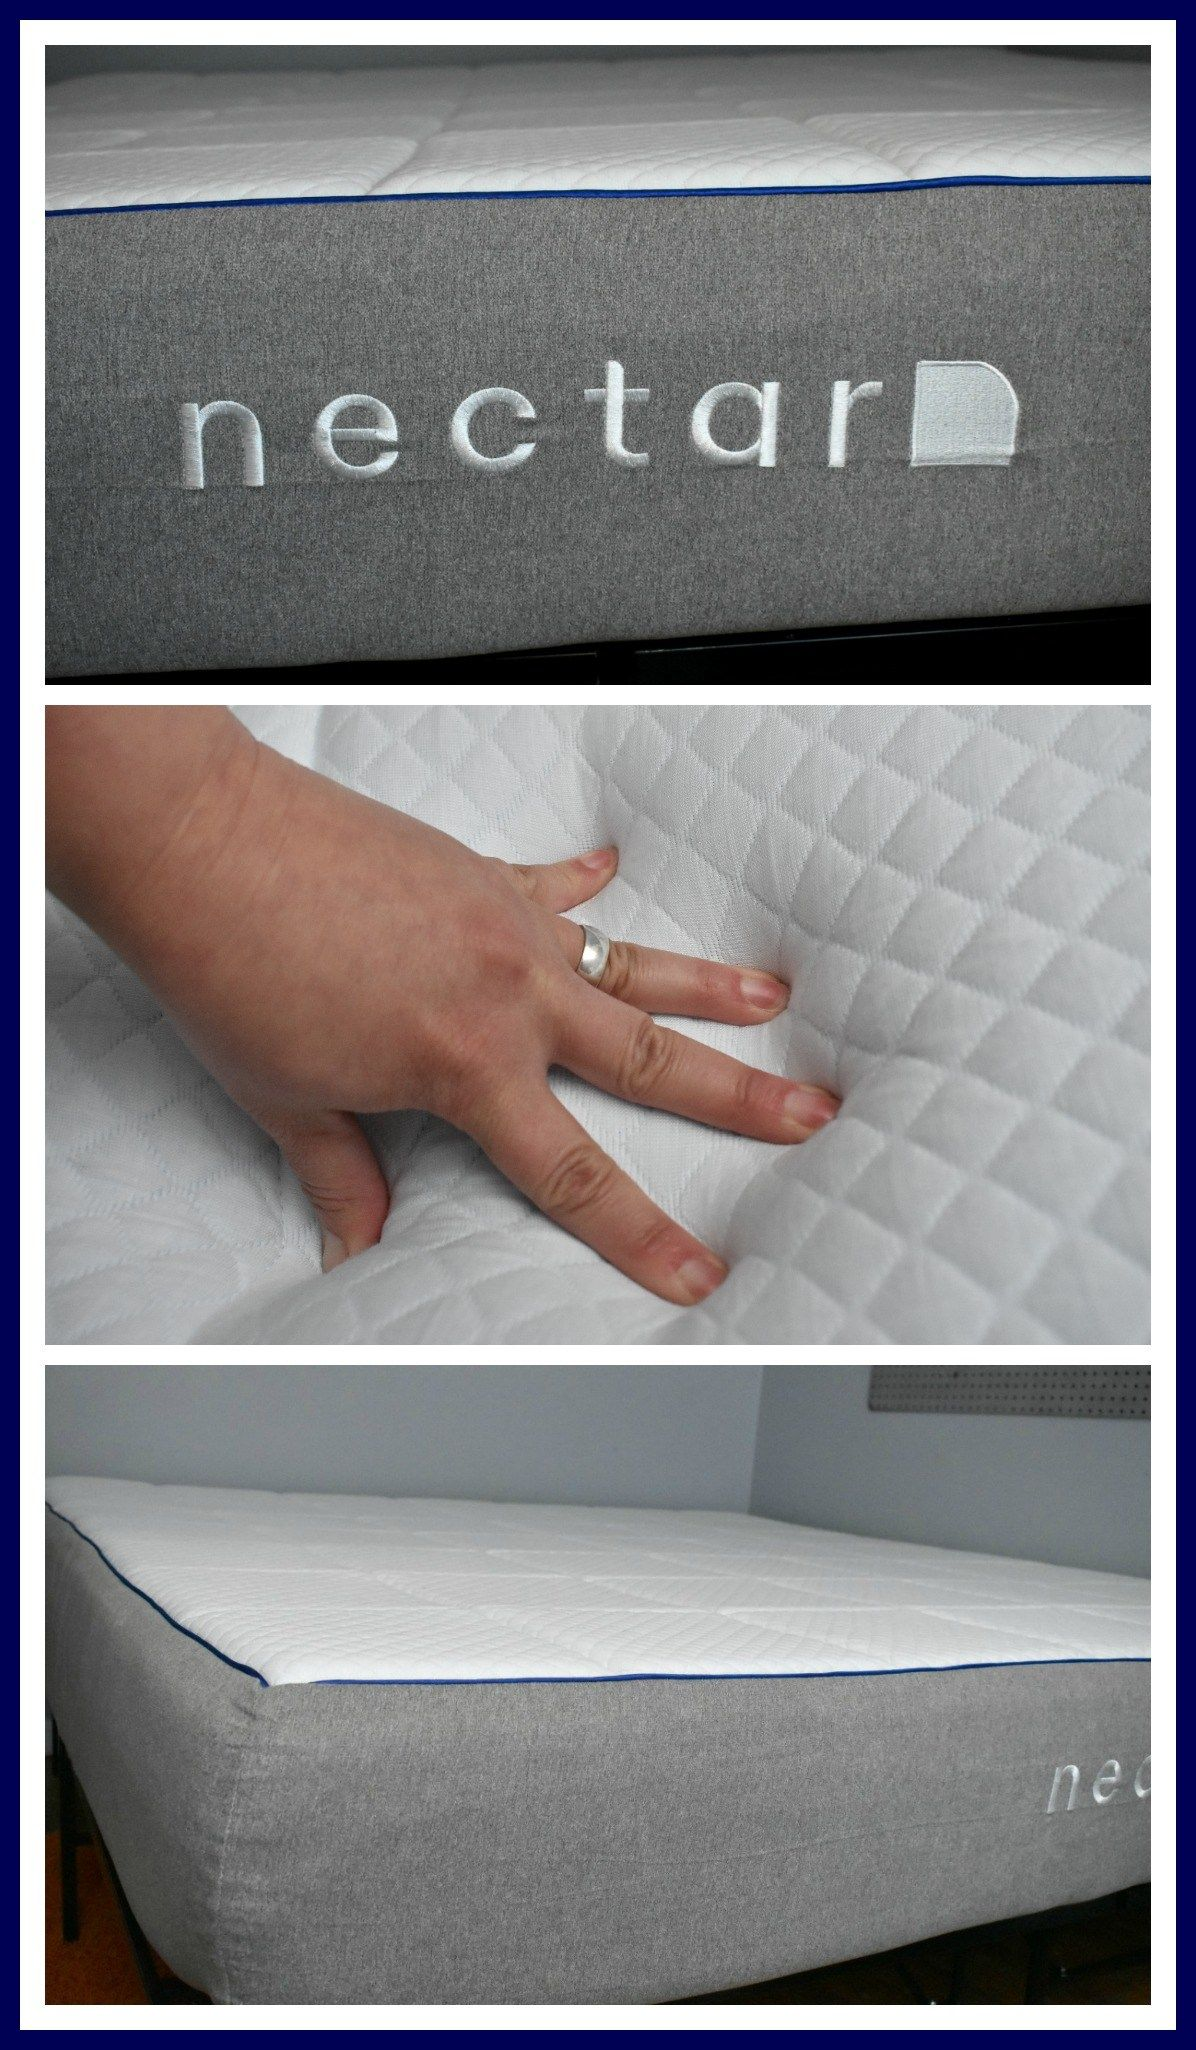 The Nectar Sleep Mattress comes in a bag delivered right